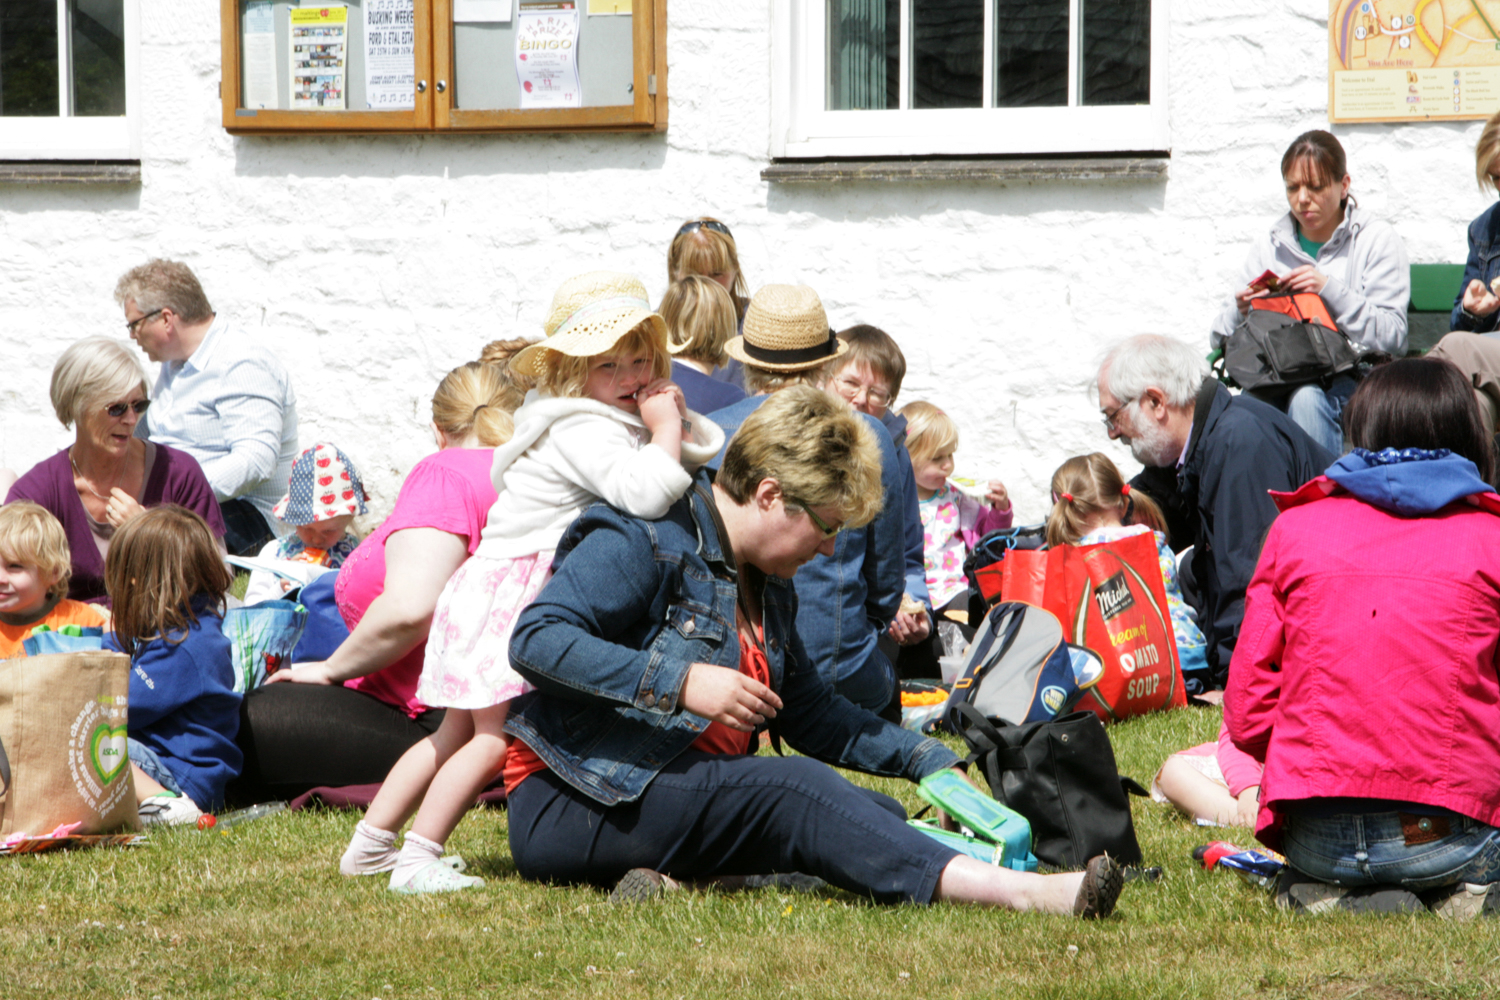 PICTORIAL_BERWICK_bookstart-heatherslaw-funded-day-out-educational-extended-services-lorna-chappell-organised-fire-police-9775.jpg